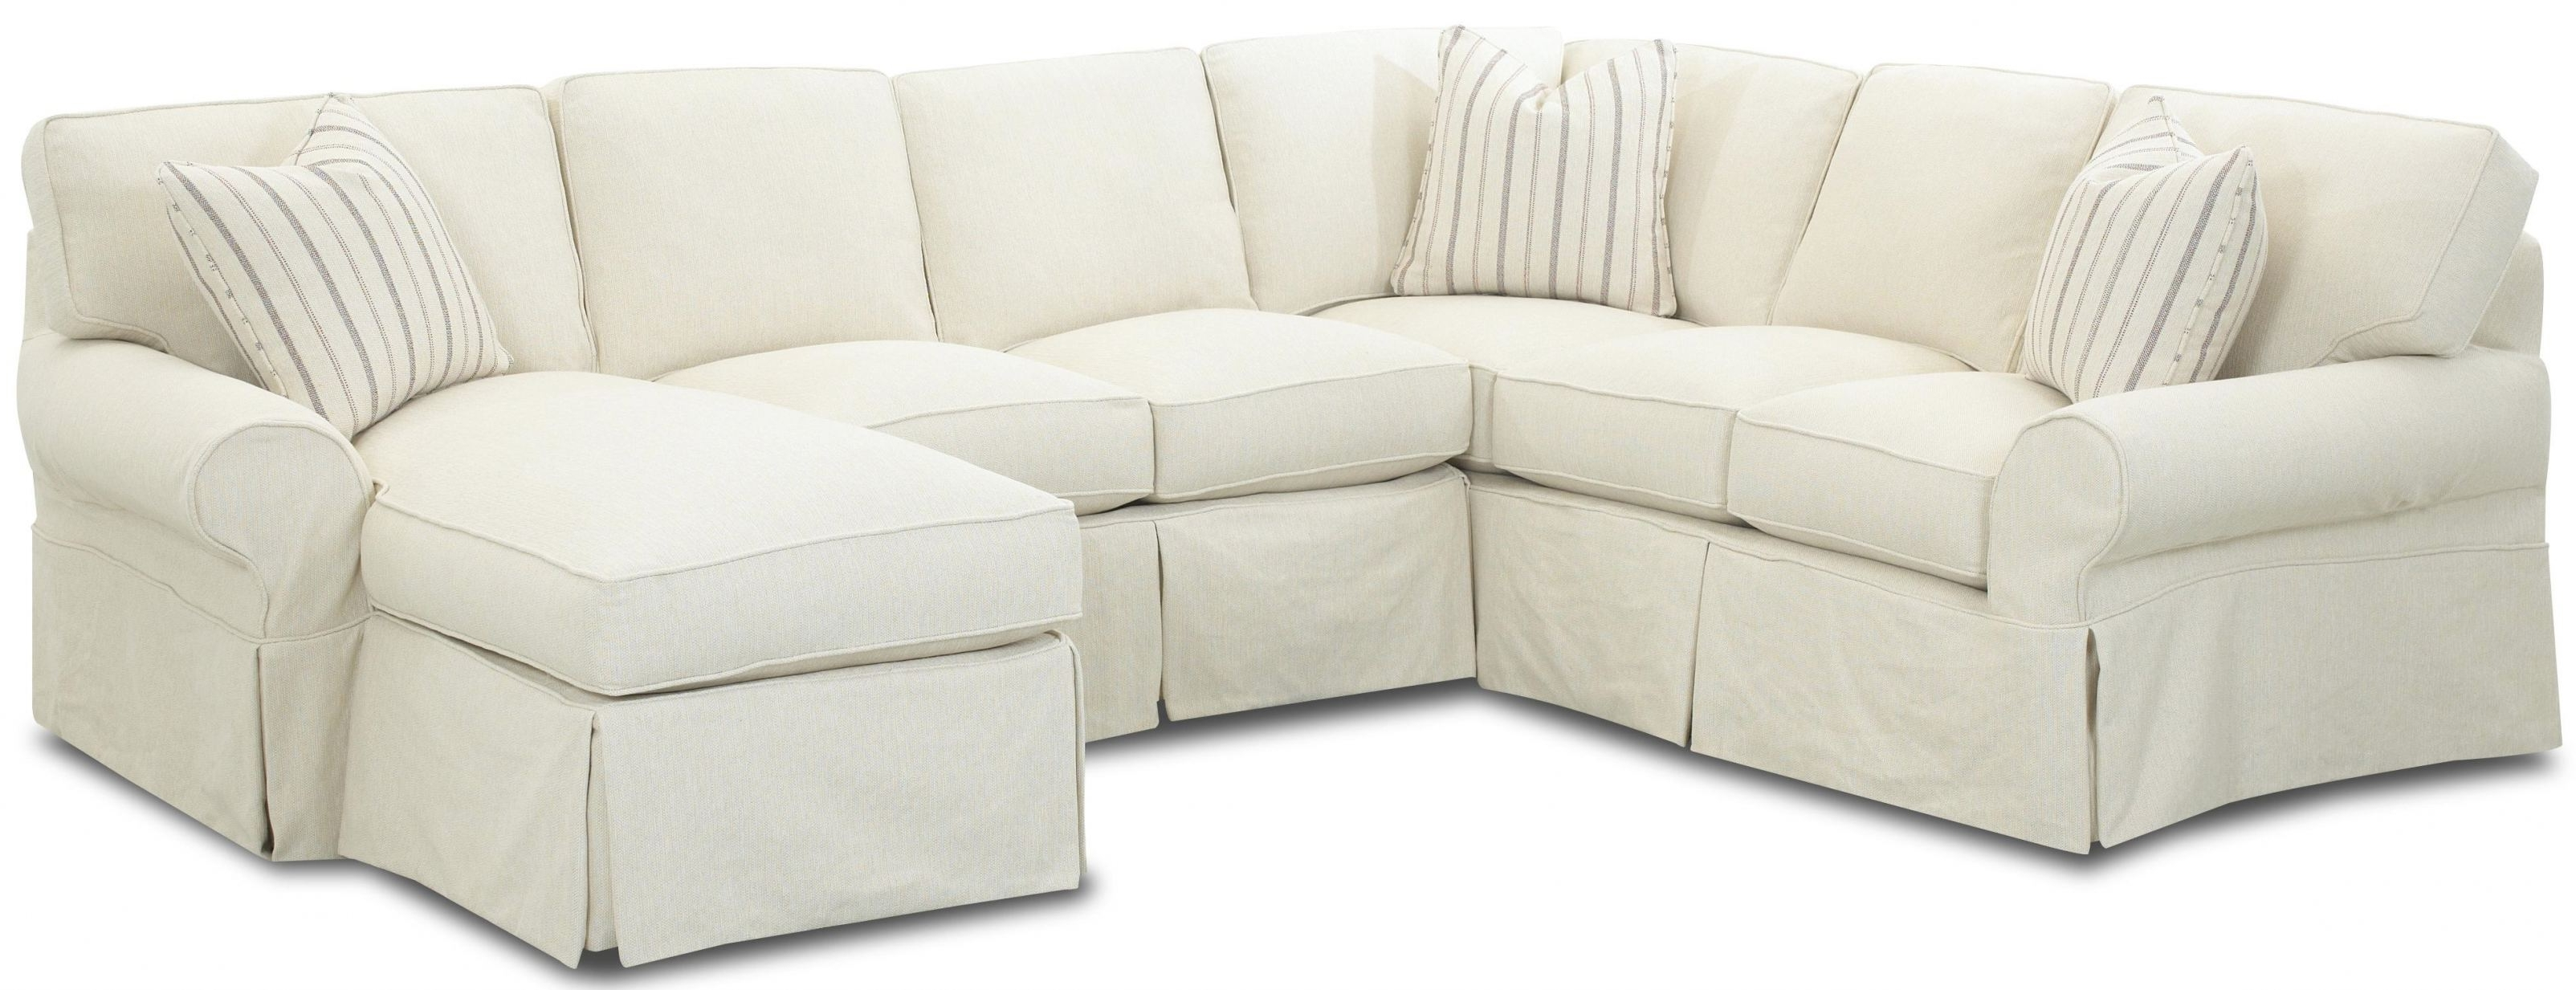 Sectional Sofas With Covers Within Fashionable Grey Microfiber Sectional Sofa (View 11 of 15)